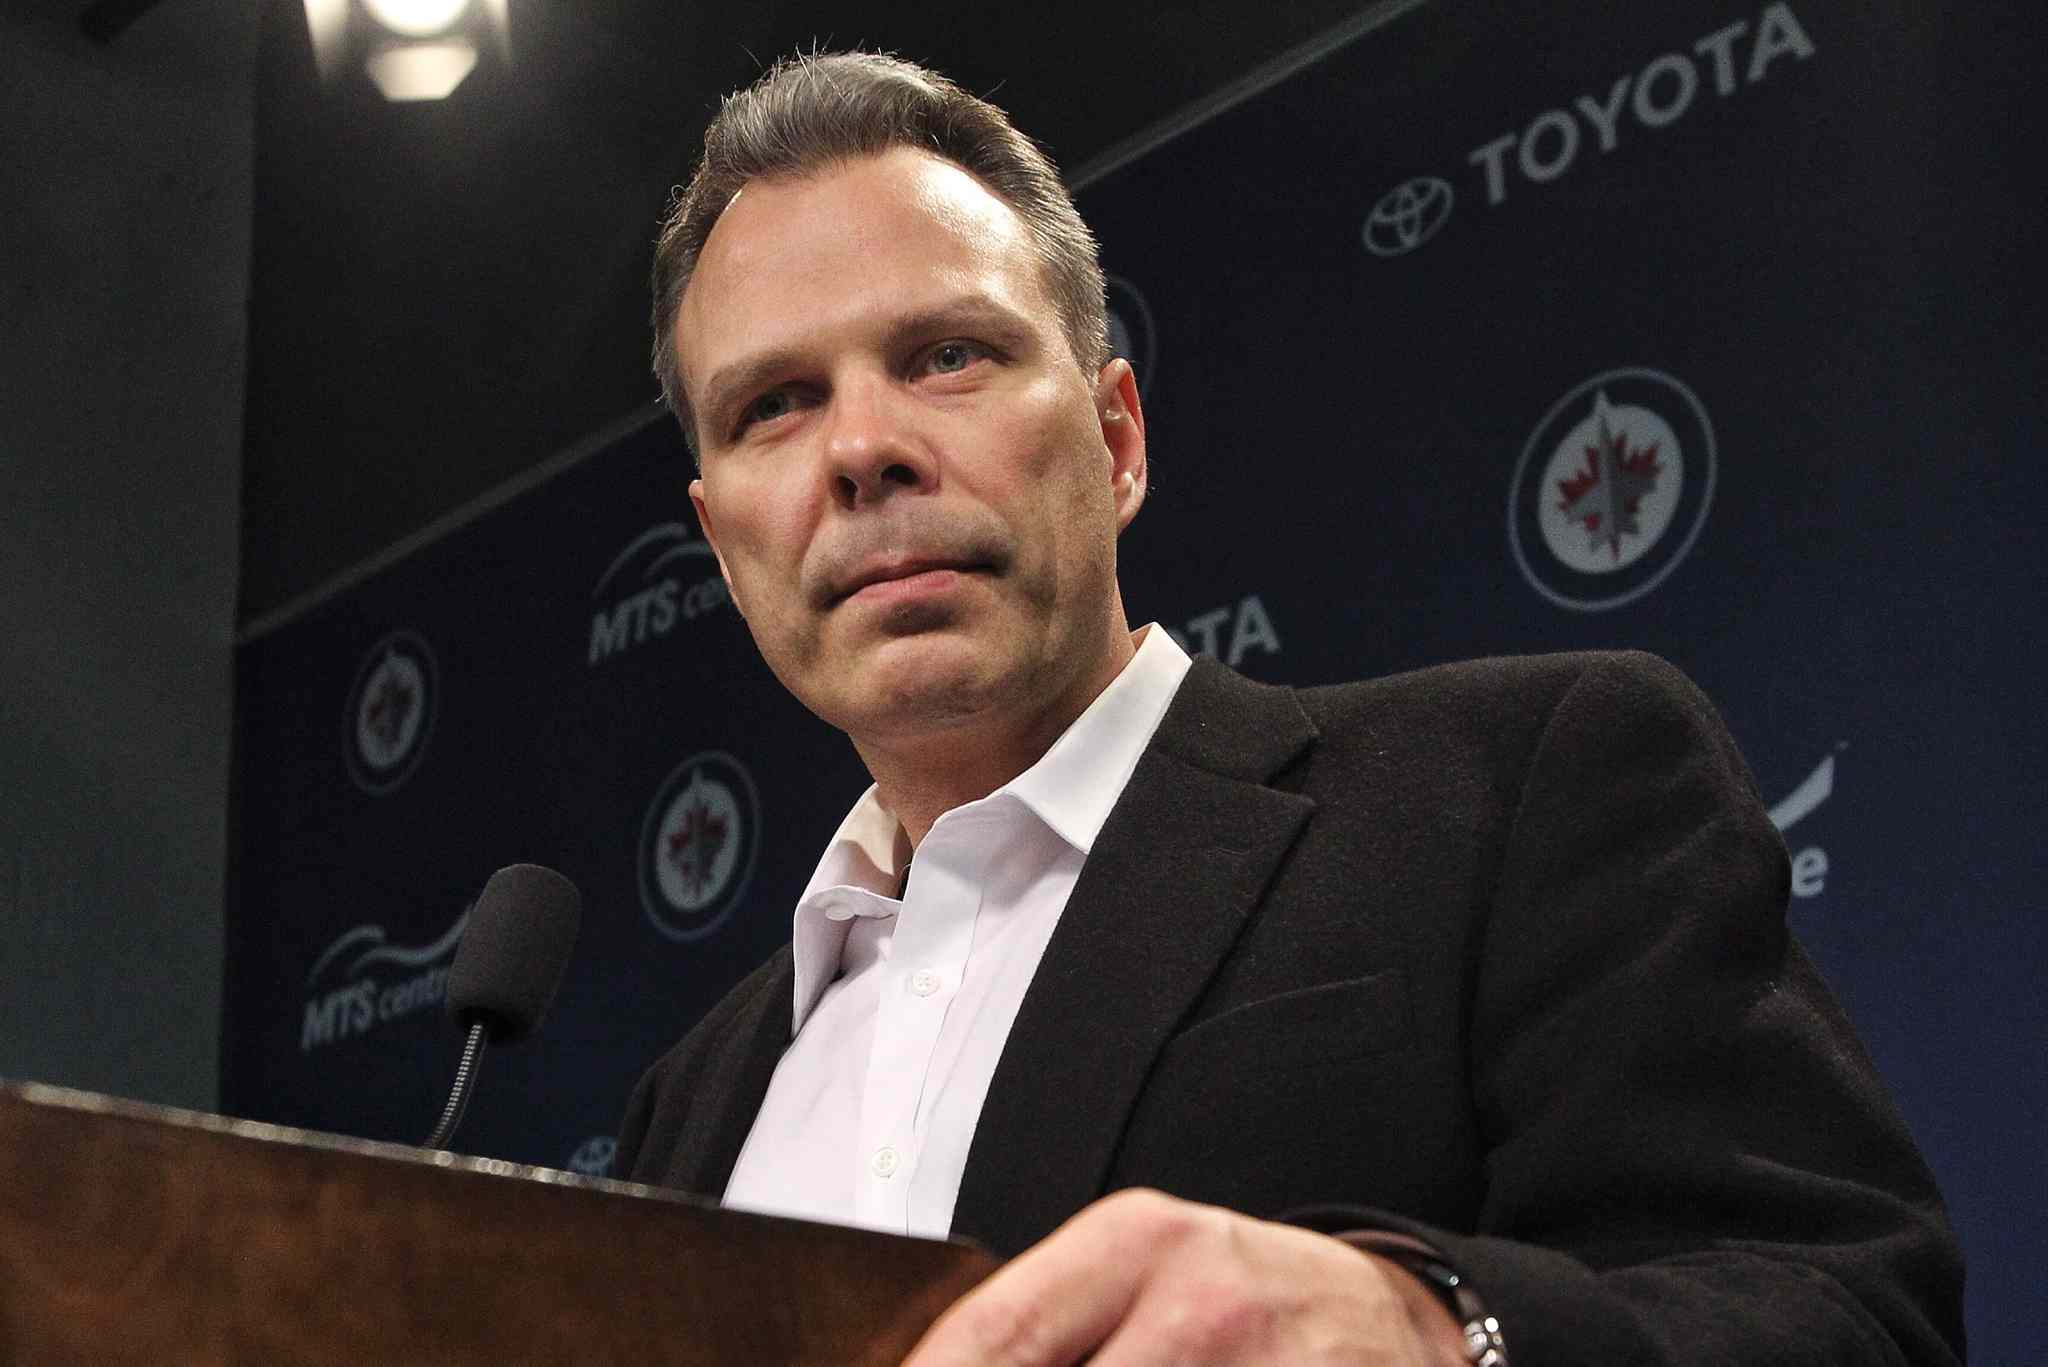 Winnipeg Jets General Manager Kevin Cheveldayoff talks to the media about his decision to fire Claude Noel and hire Paul Maurice as the new head coach yesterday.